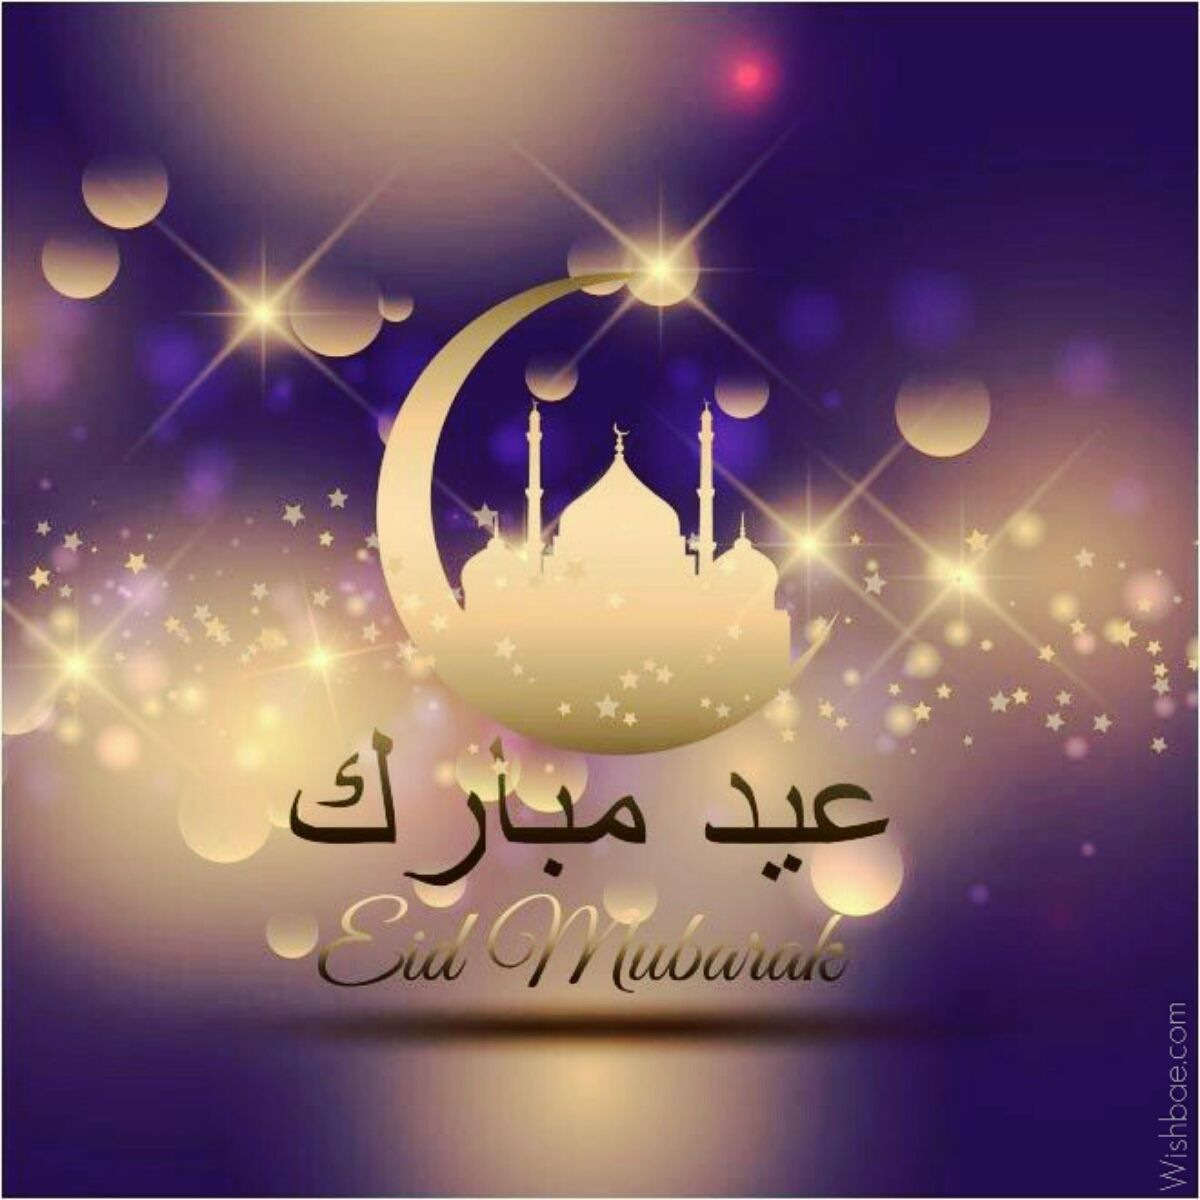 Eid Mubarak Wishes Happy Eid Al Fitr Quotes Messages Images